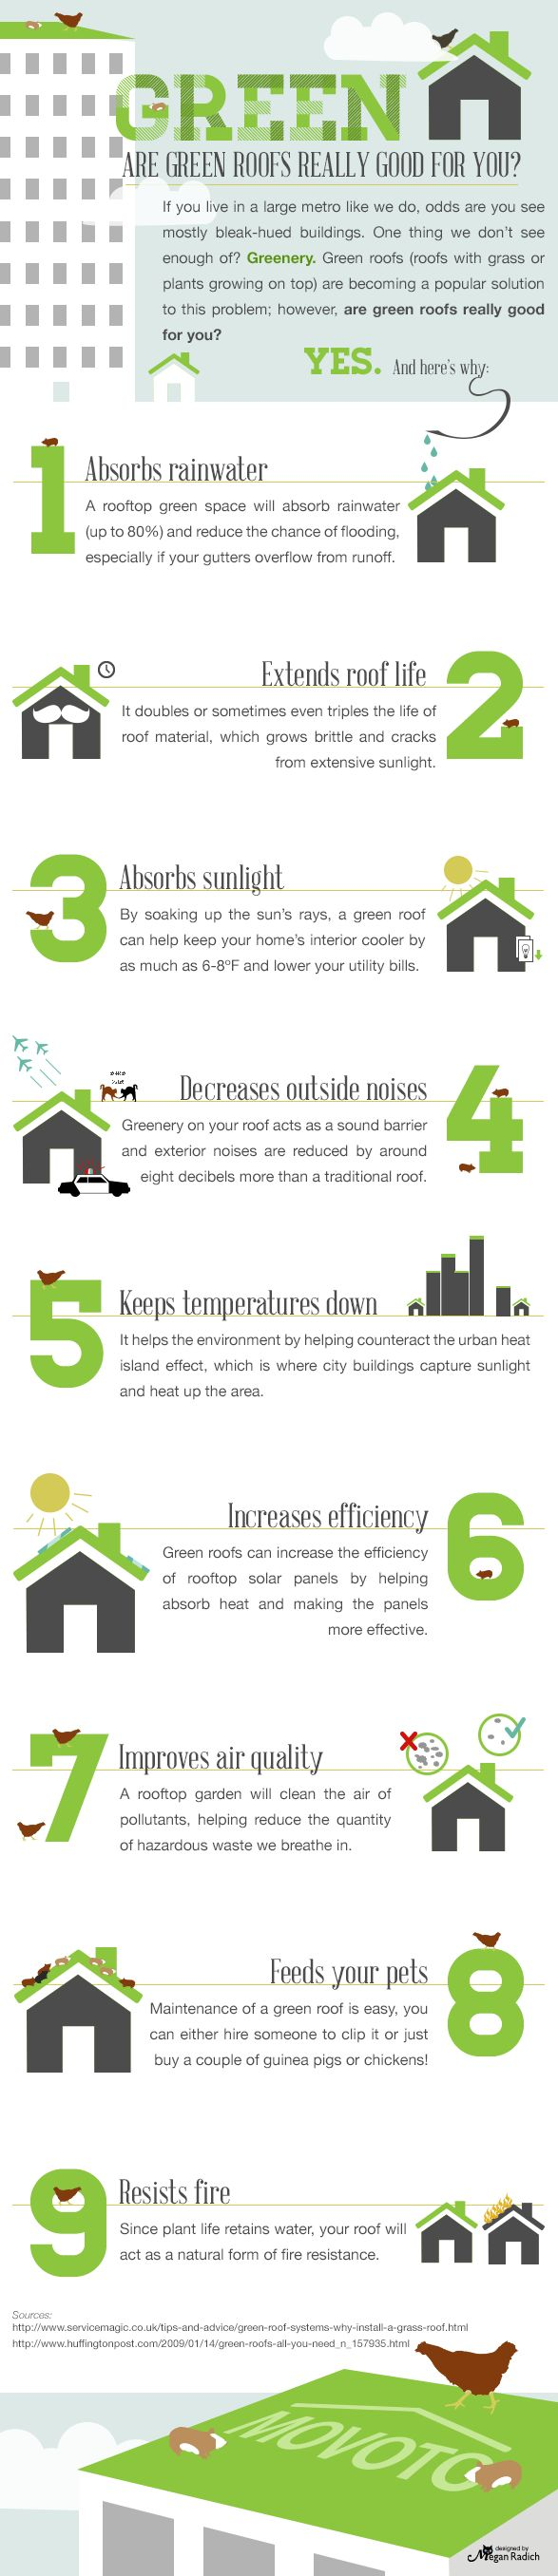 Are green roofs really good for you? #infographic #greenroof #environment – Mother Nature